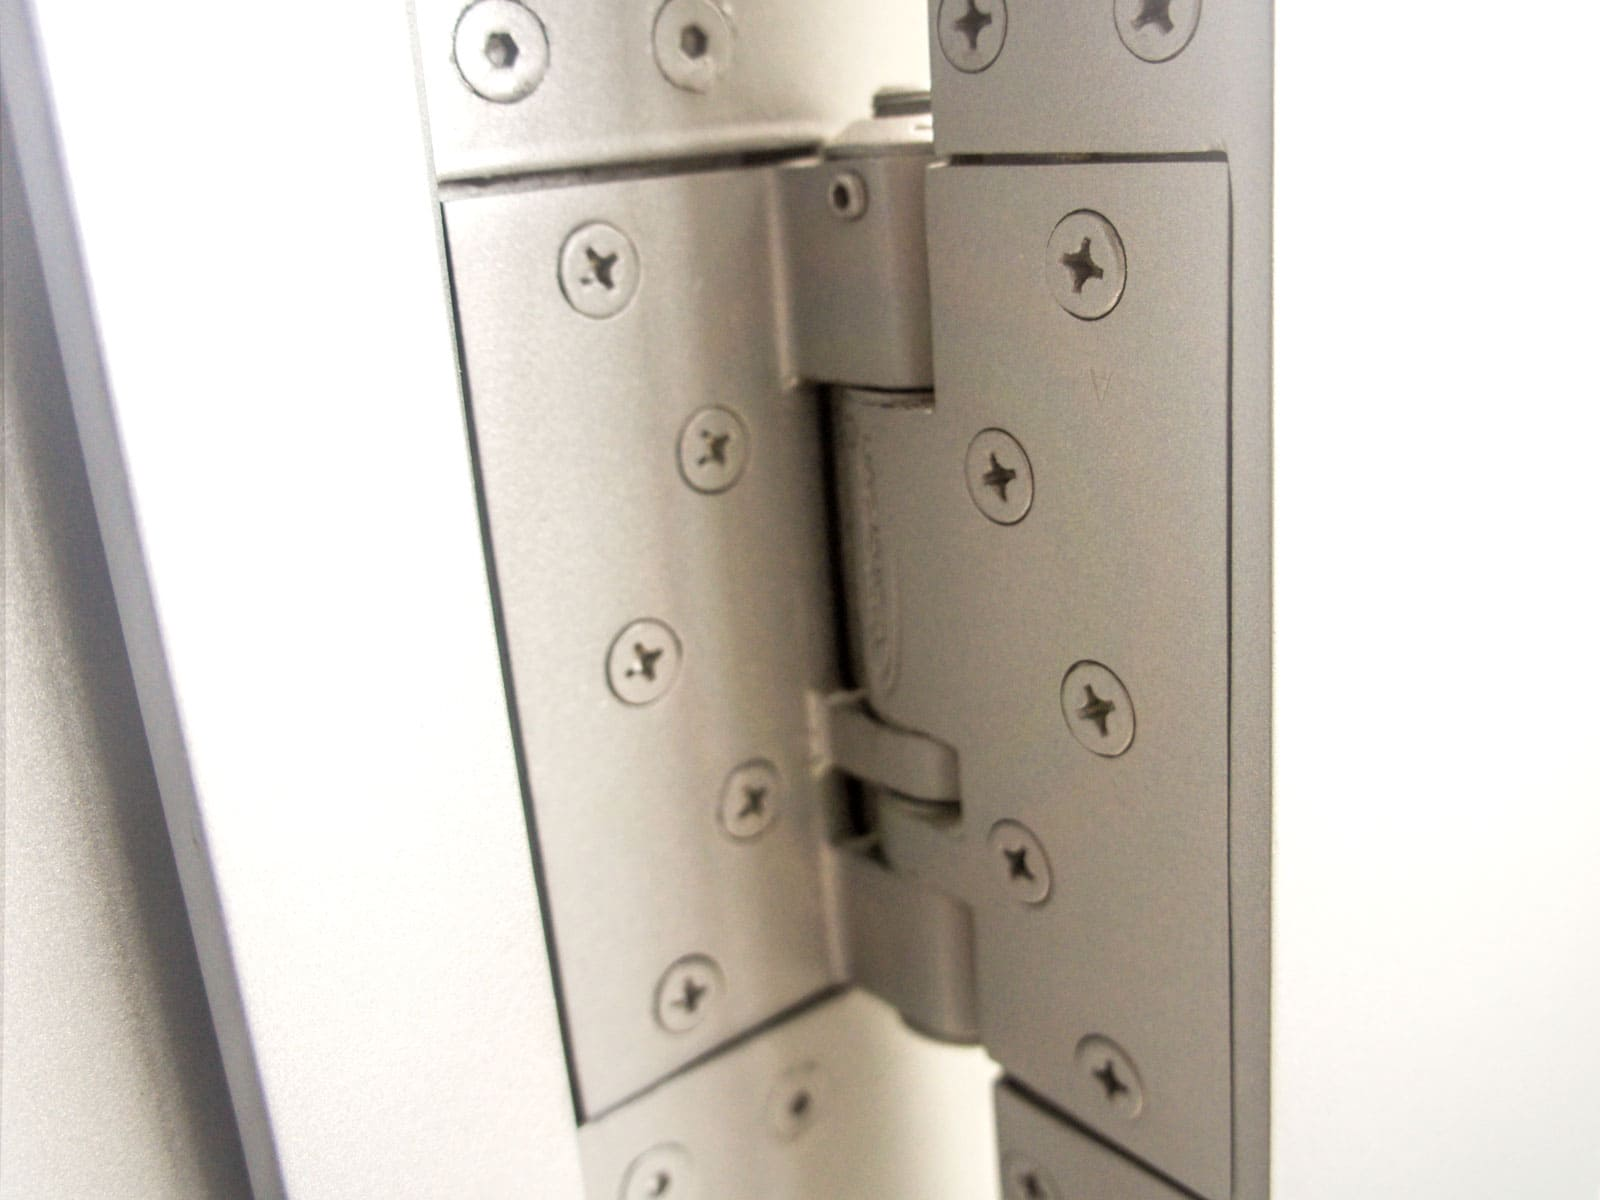 Self closing door hinge - stainless steel door hinges